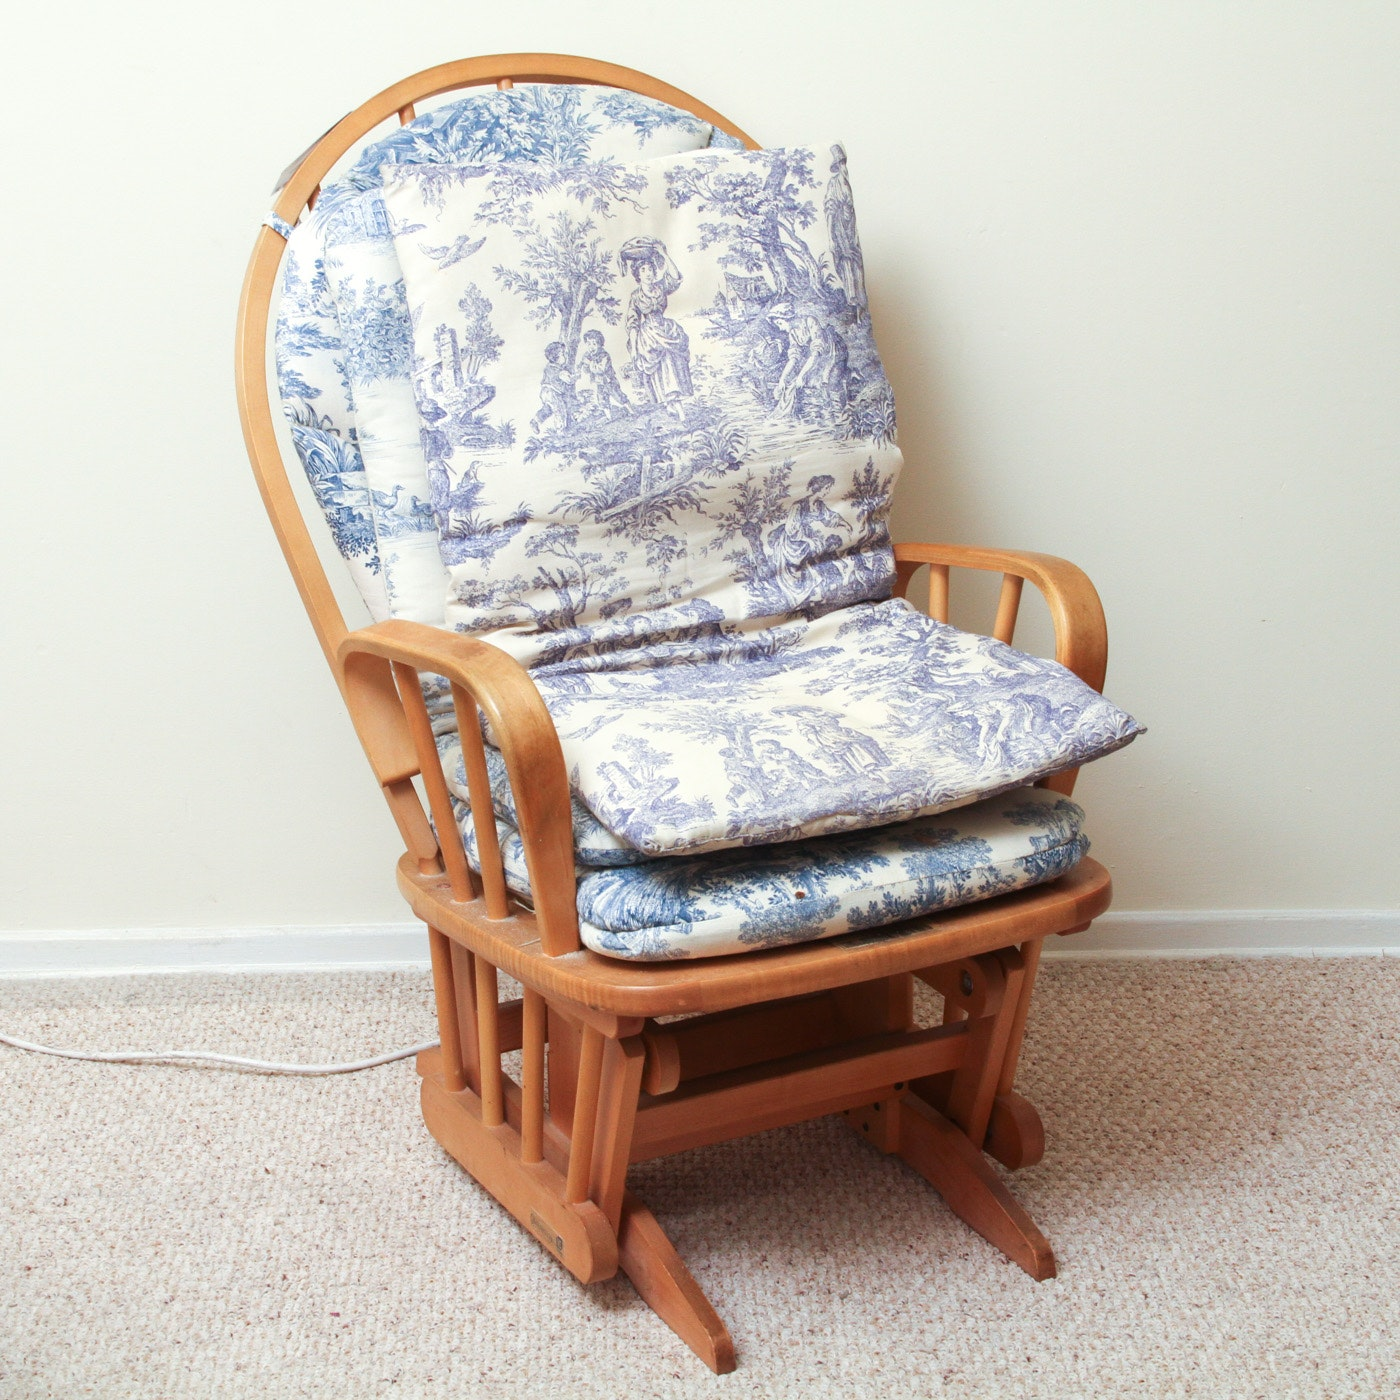 Dutaller Glider Rocking Chair with Toile Cushions